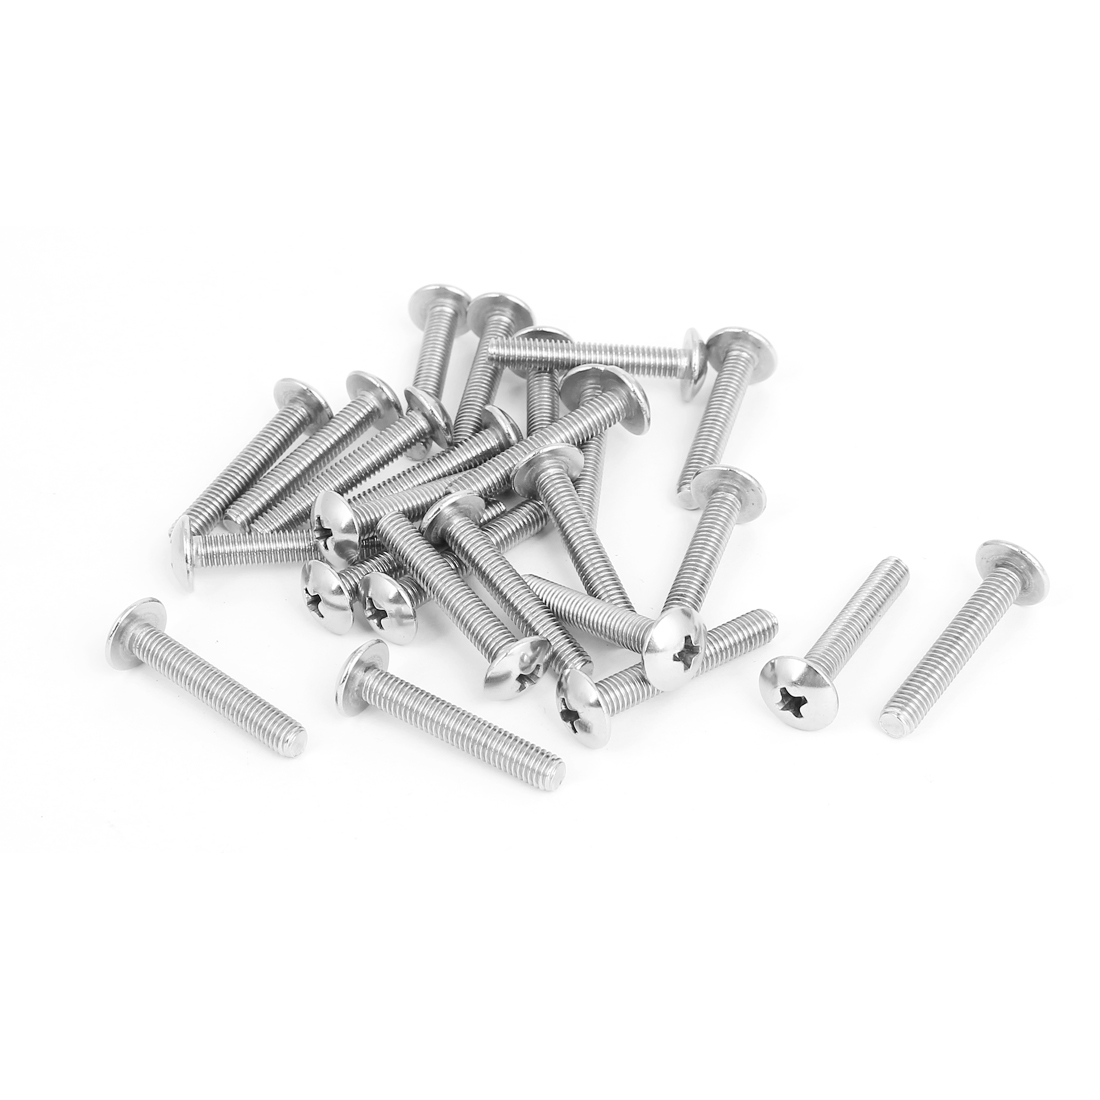 M5x30mm Stainless Steel Truss Phillips Head Machine Screws 25pcs